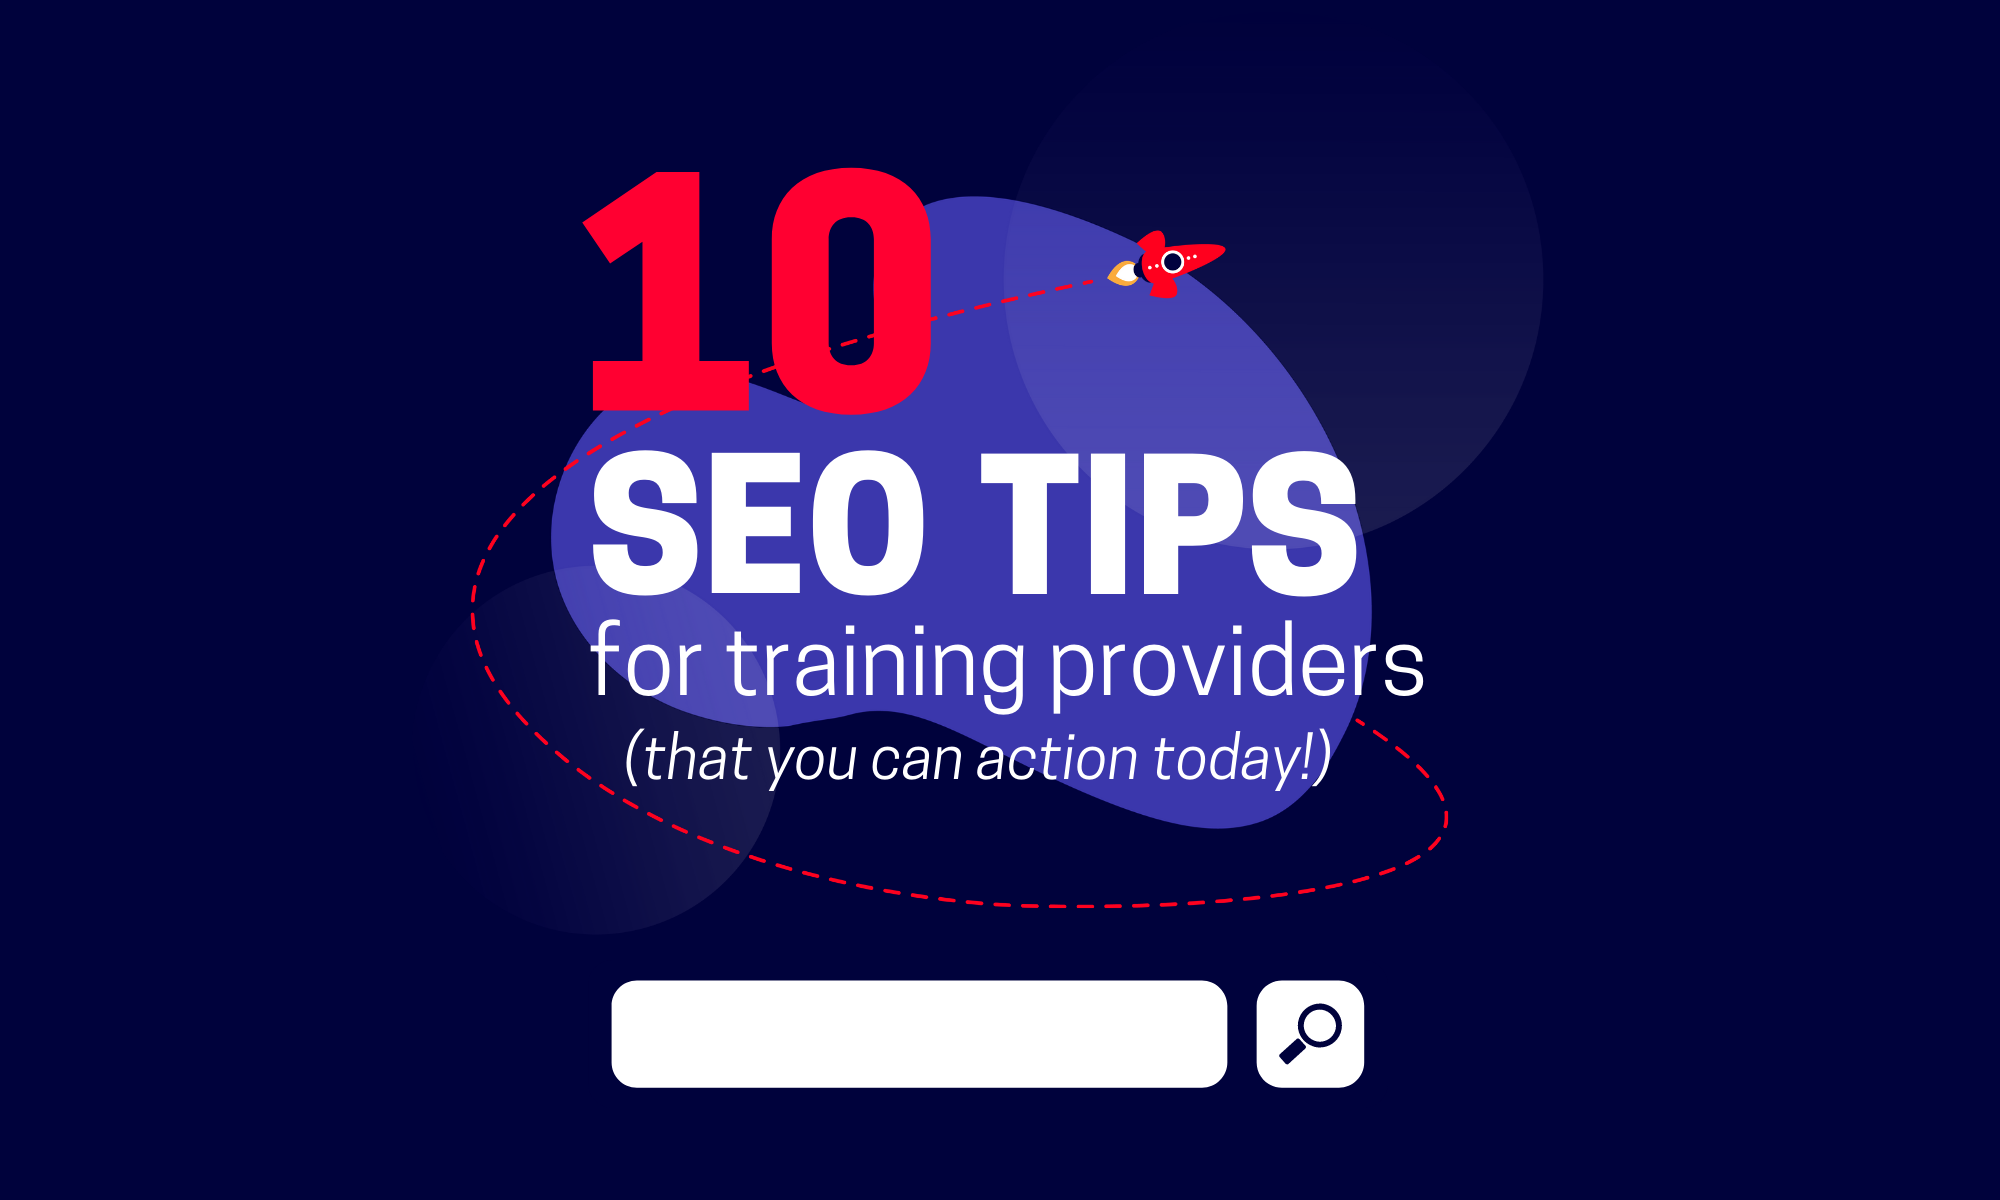 10 seo tips for training providers cover graphic